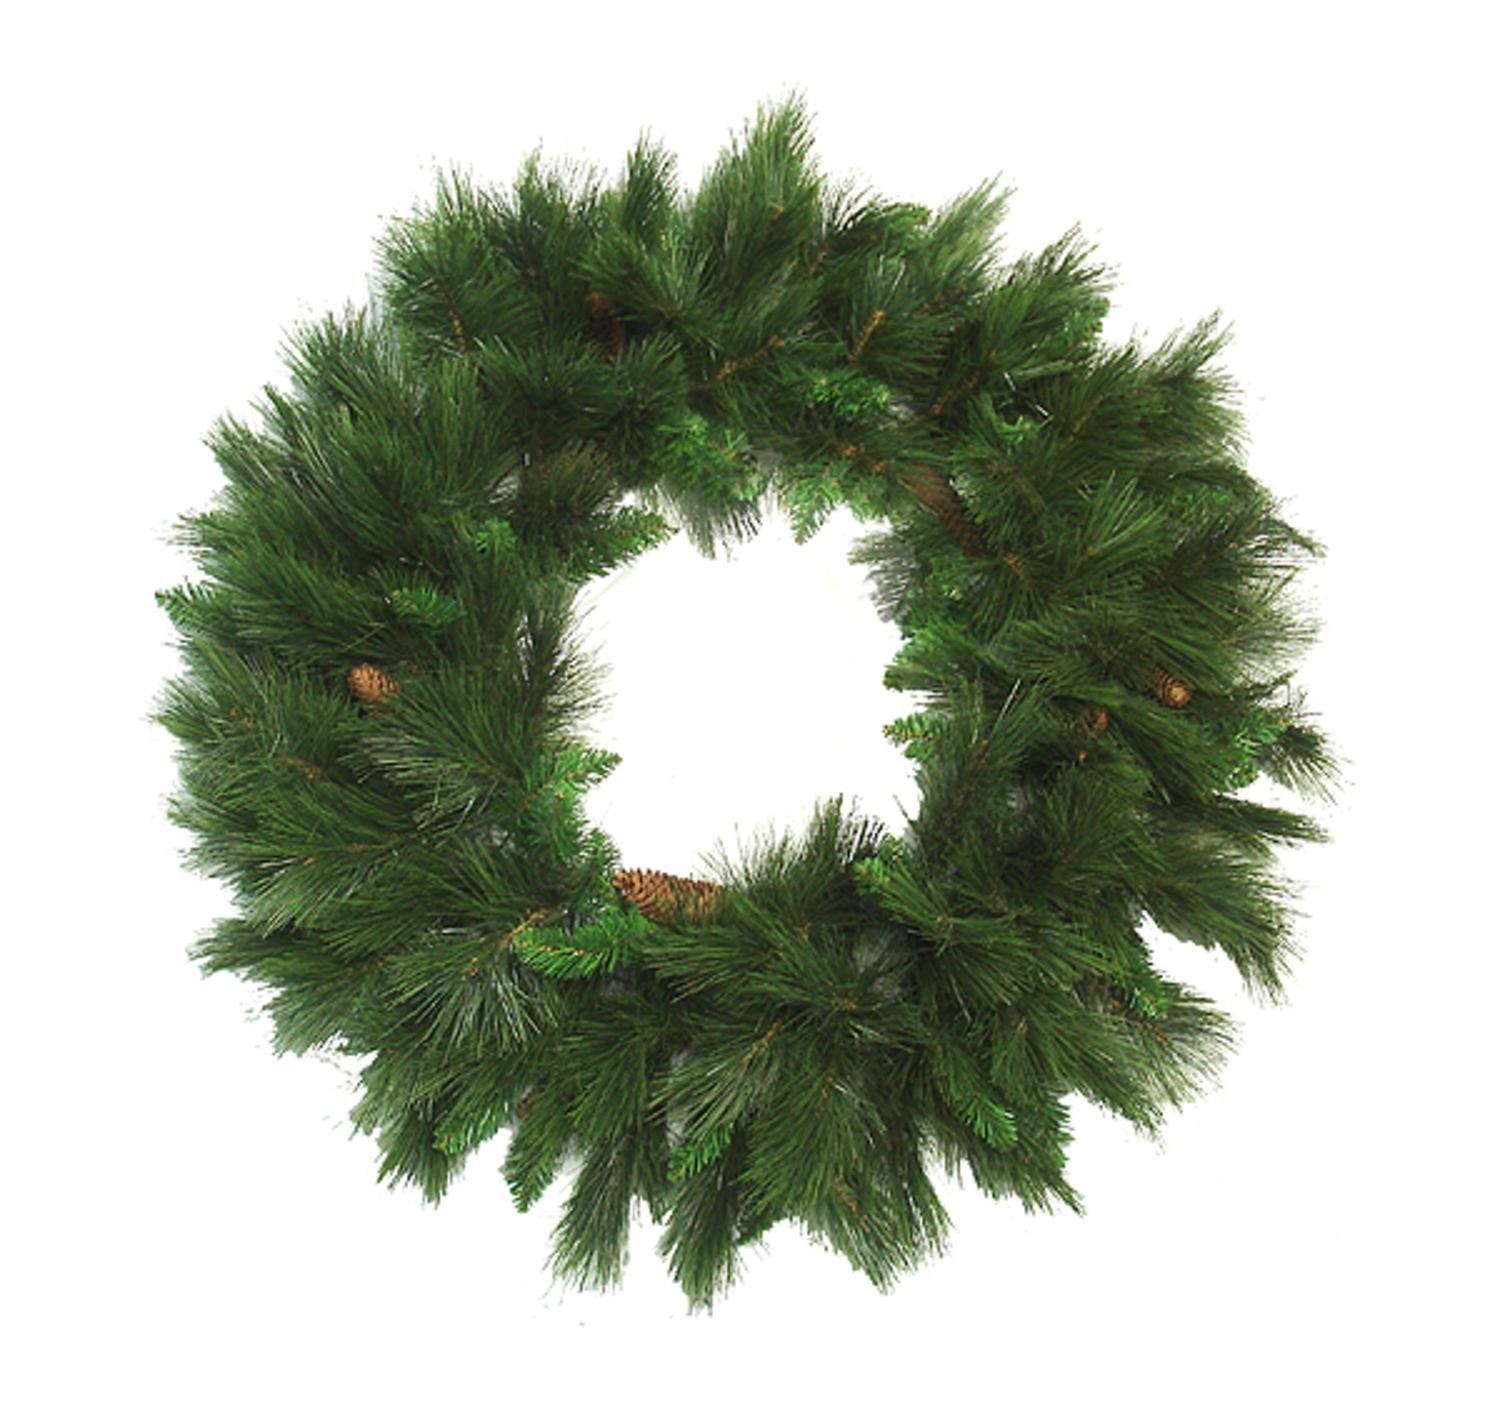 48'' Mixed Long Needle Pine Artificial Christmas Wreath with Pine Cones - Unlit